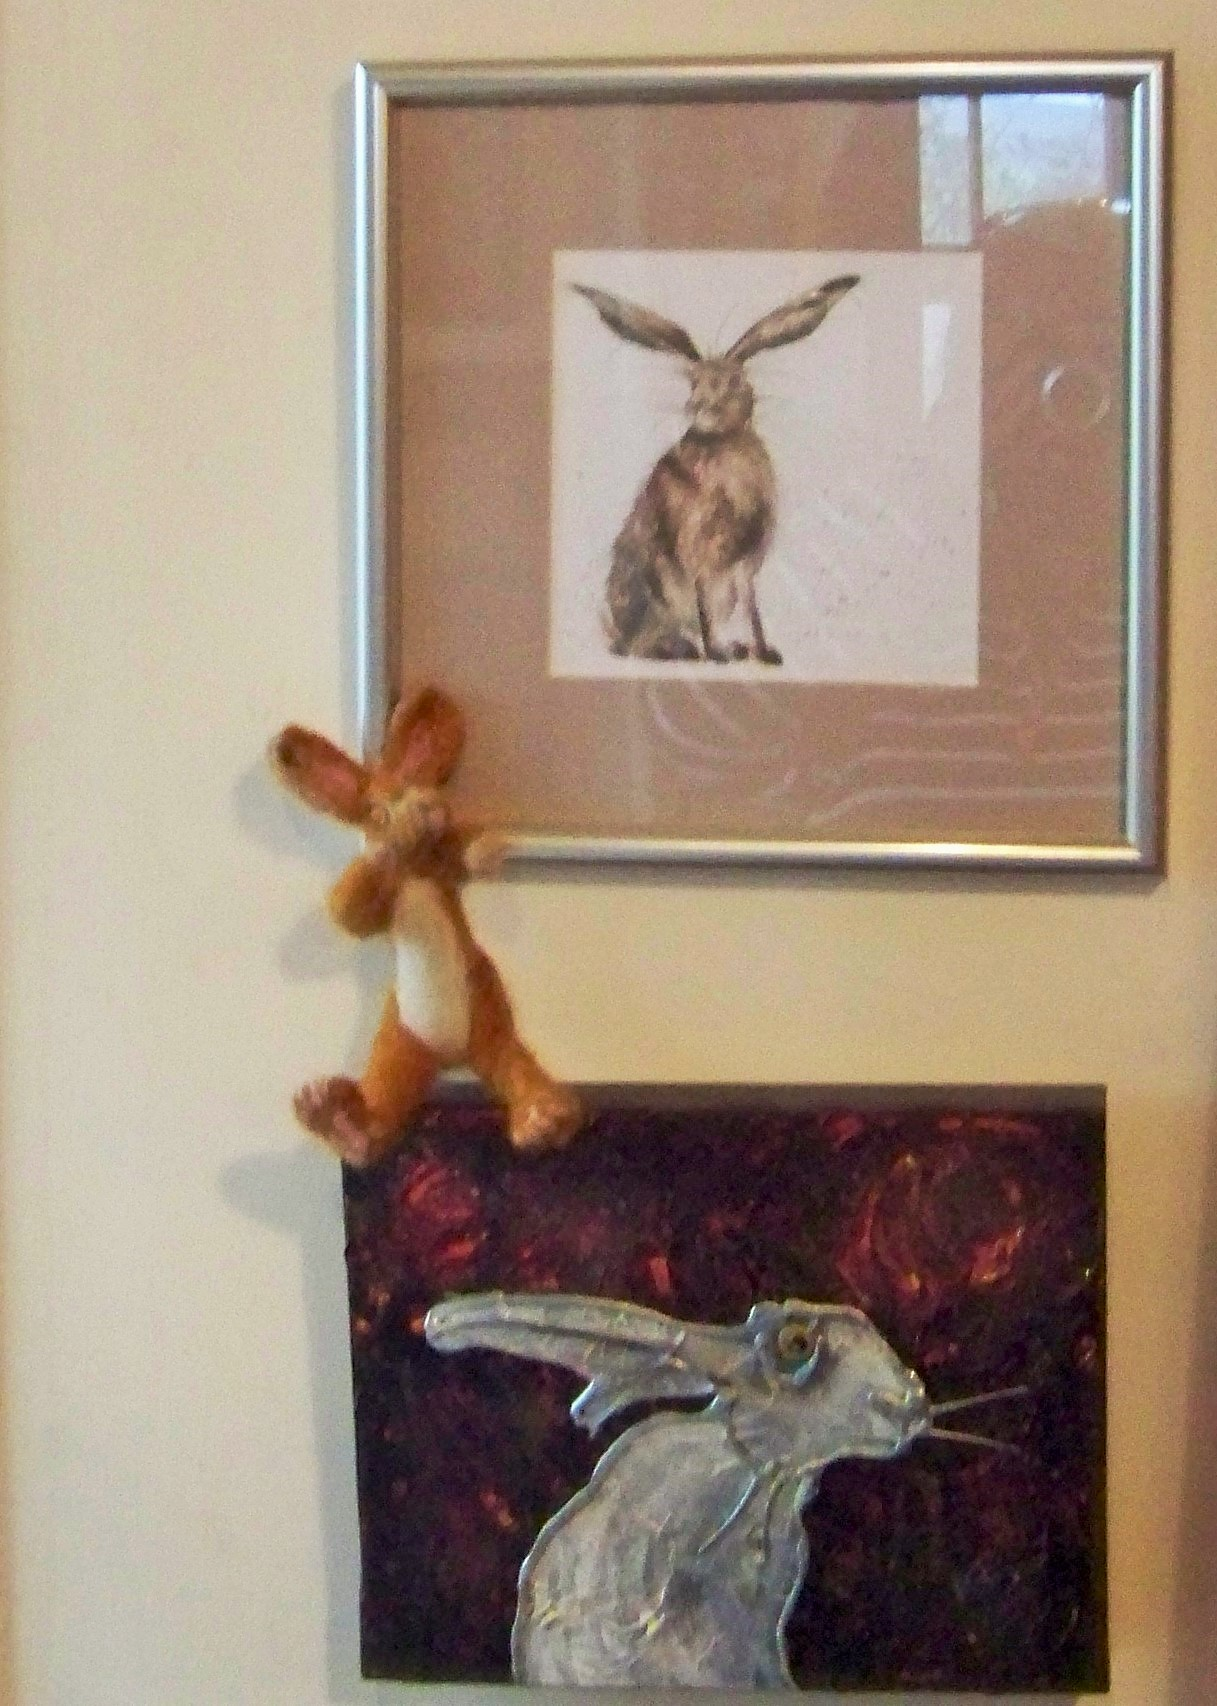 The woolly mascot of Orkney's annual storytelling festival held in the Orkney Islands in October - Story Hare